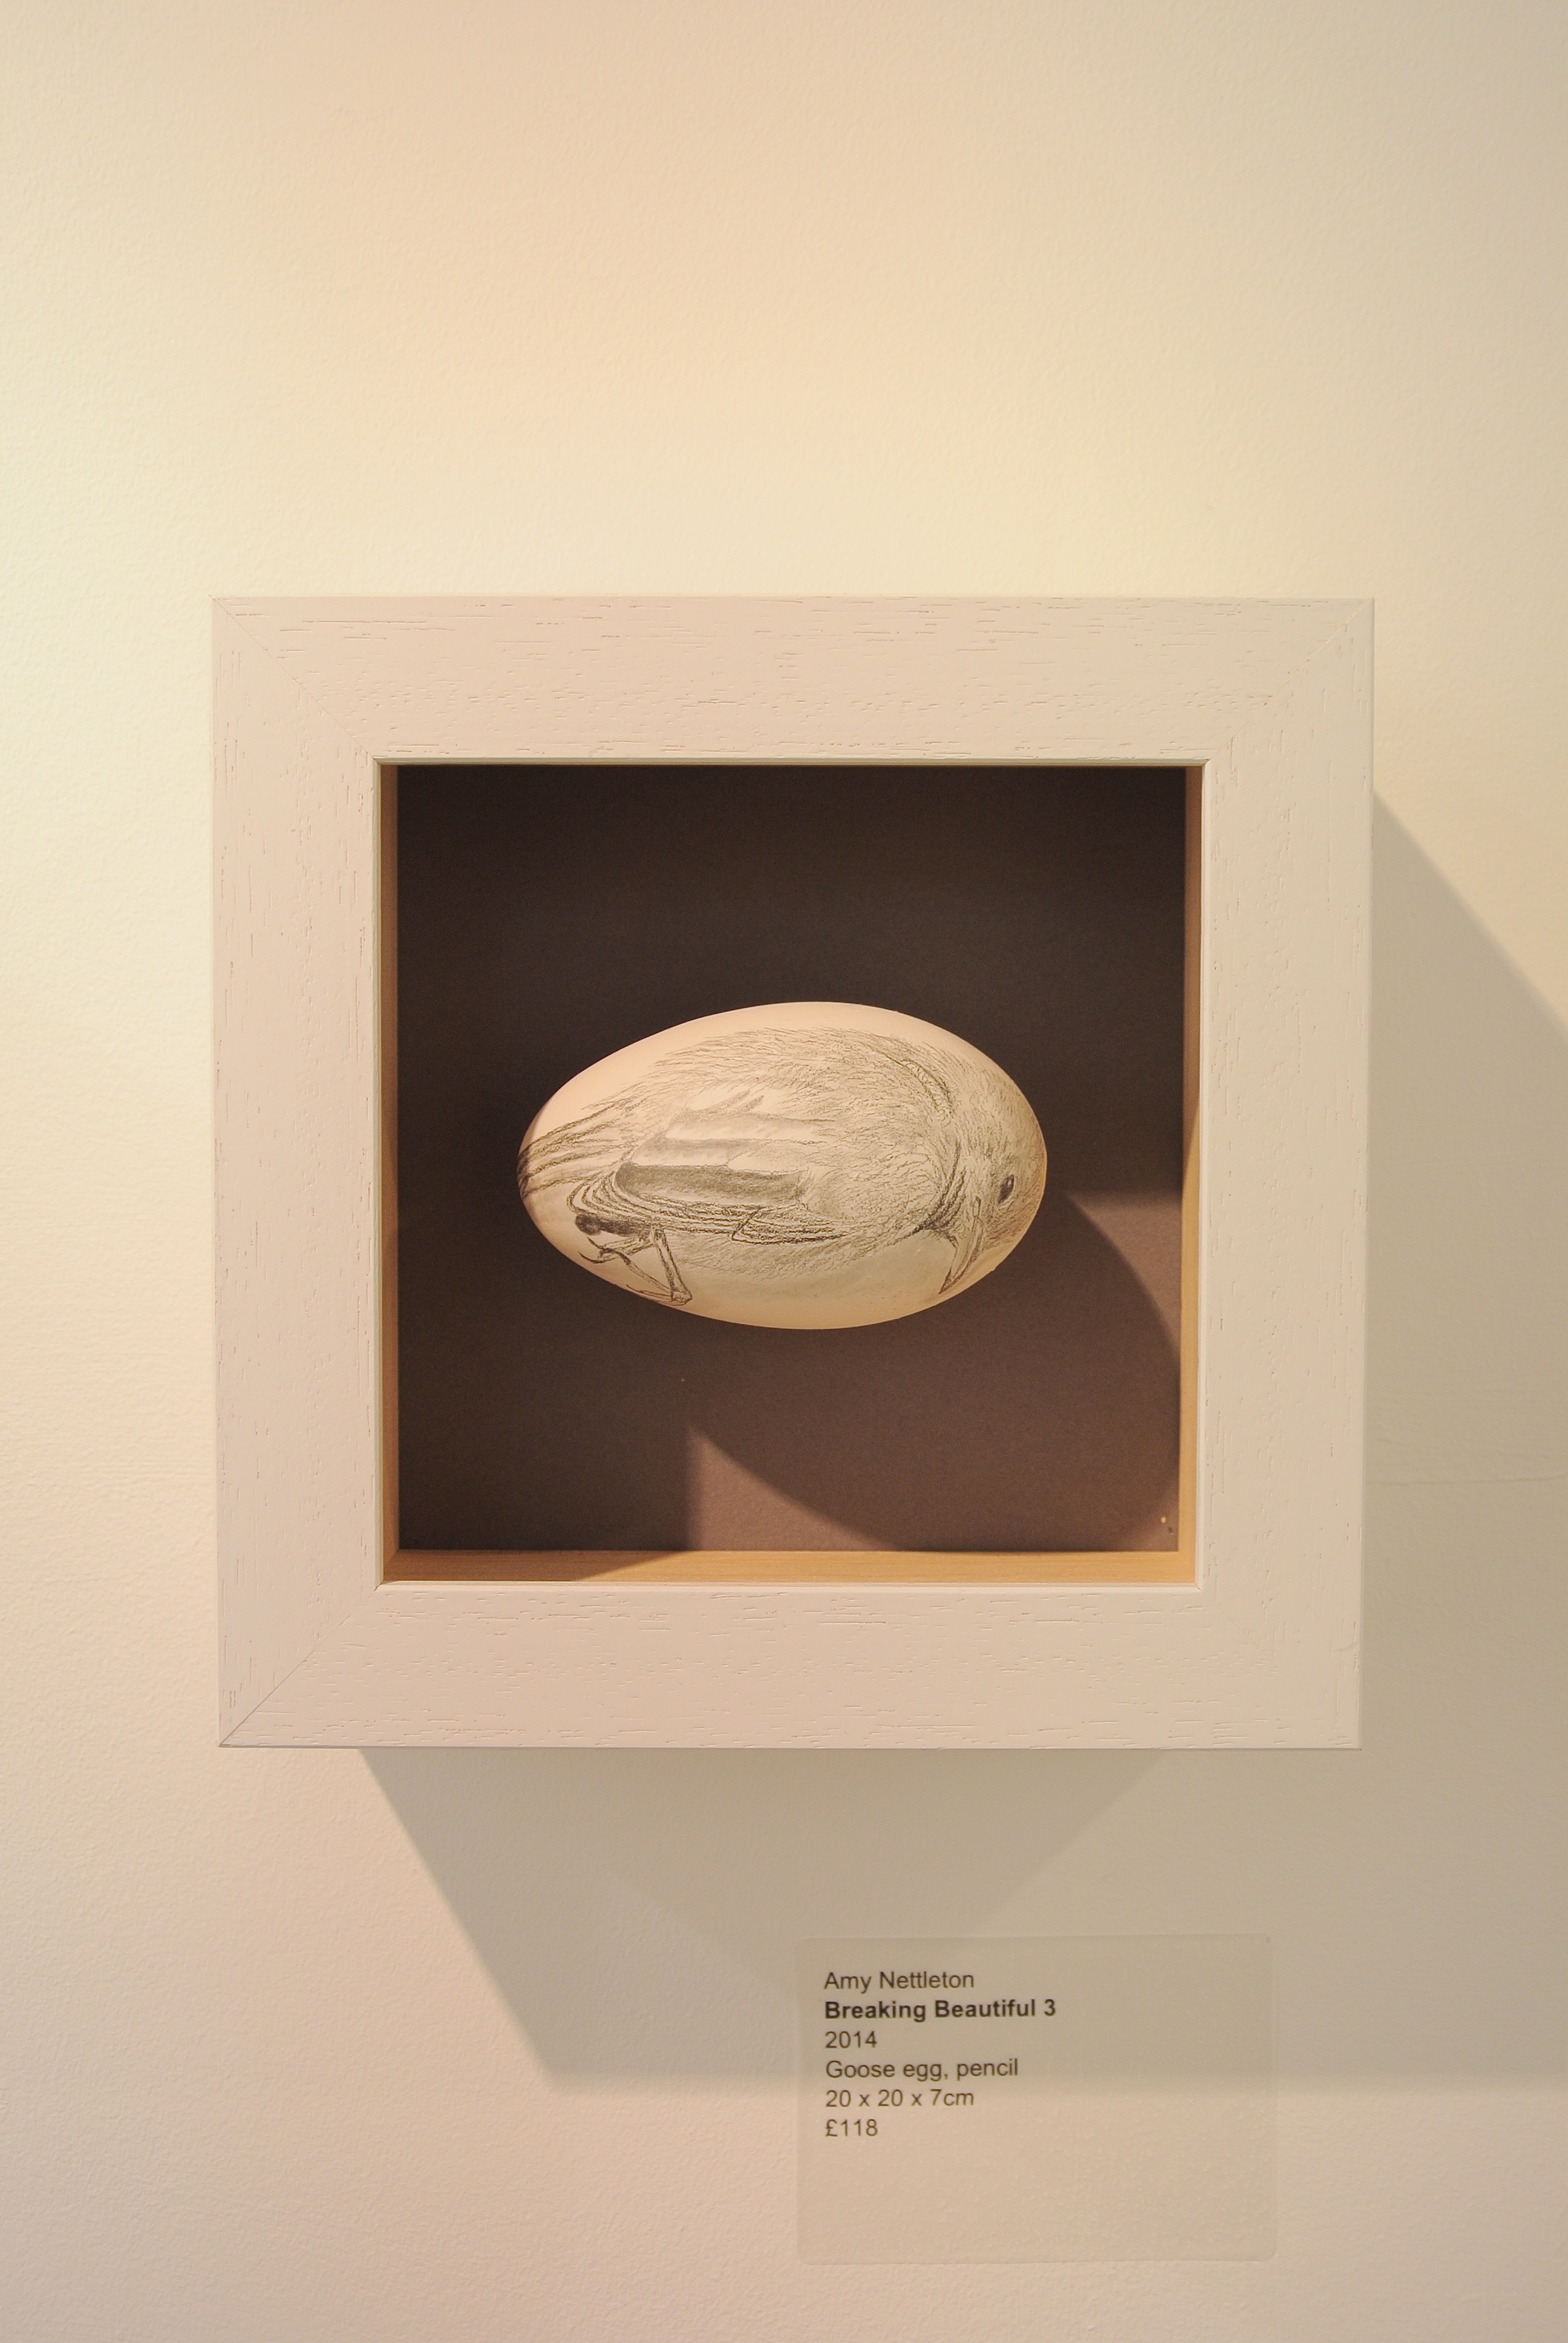 Breaking Beautiful 3, by Amy Nettleton, image of a bird drawn on egg inside a box